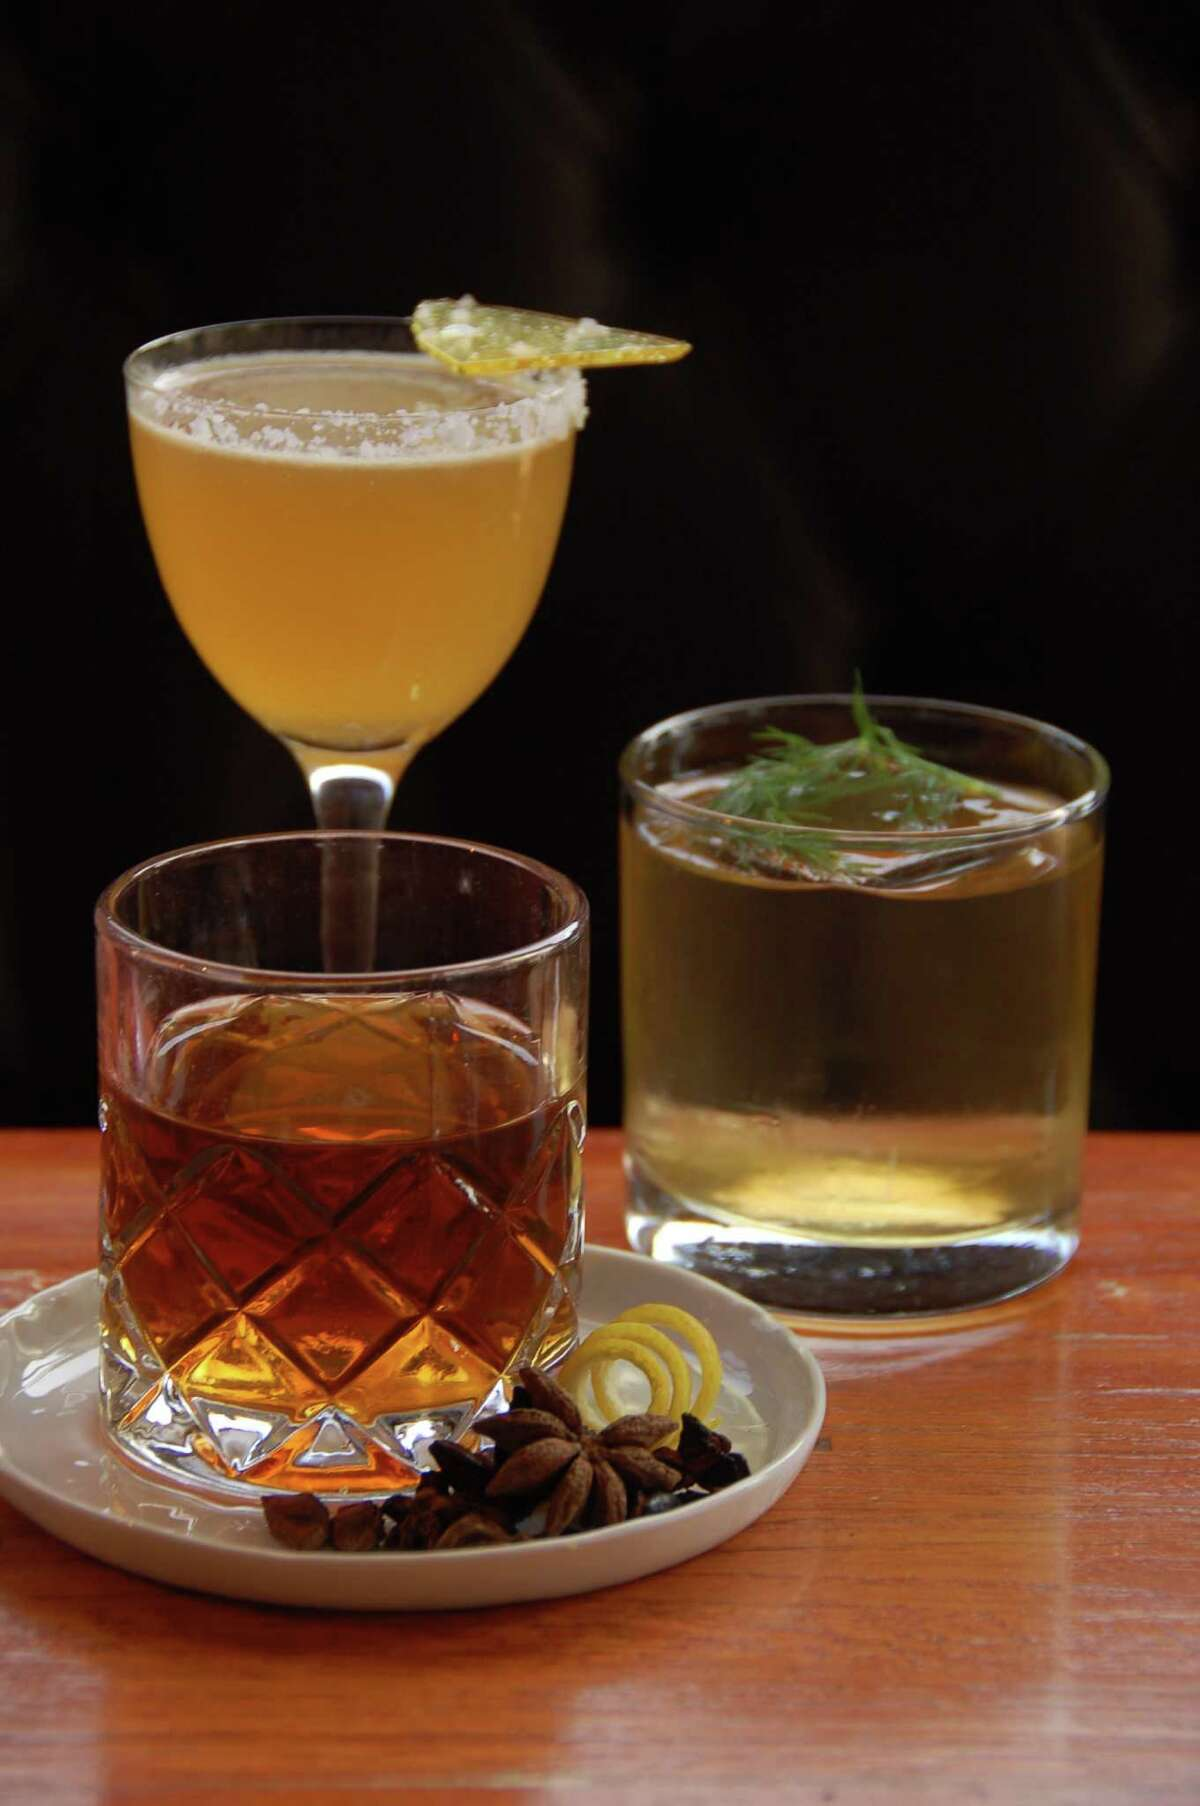 Anvil Bar & Refuge is launching a new fall menu on Oct. 5 featuring seven new seasonal cocktails that owner Bobby Heugel calls the bar's most ambitious menu yet.